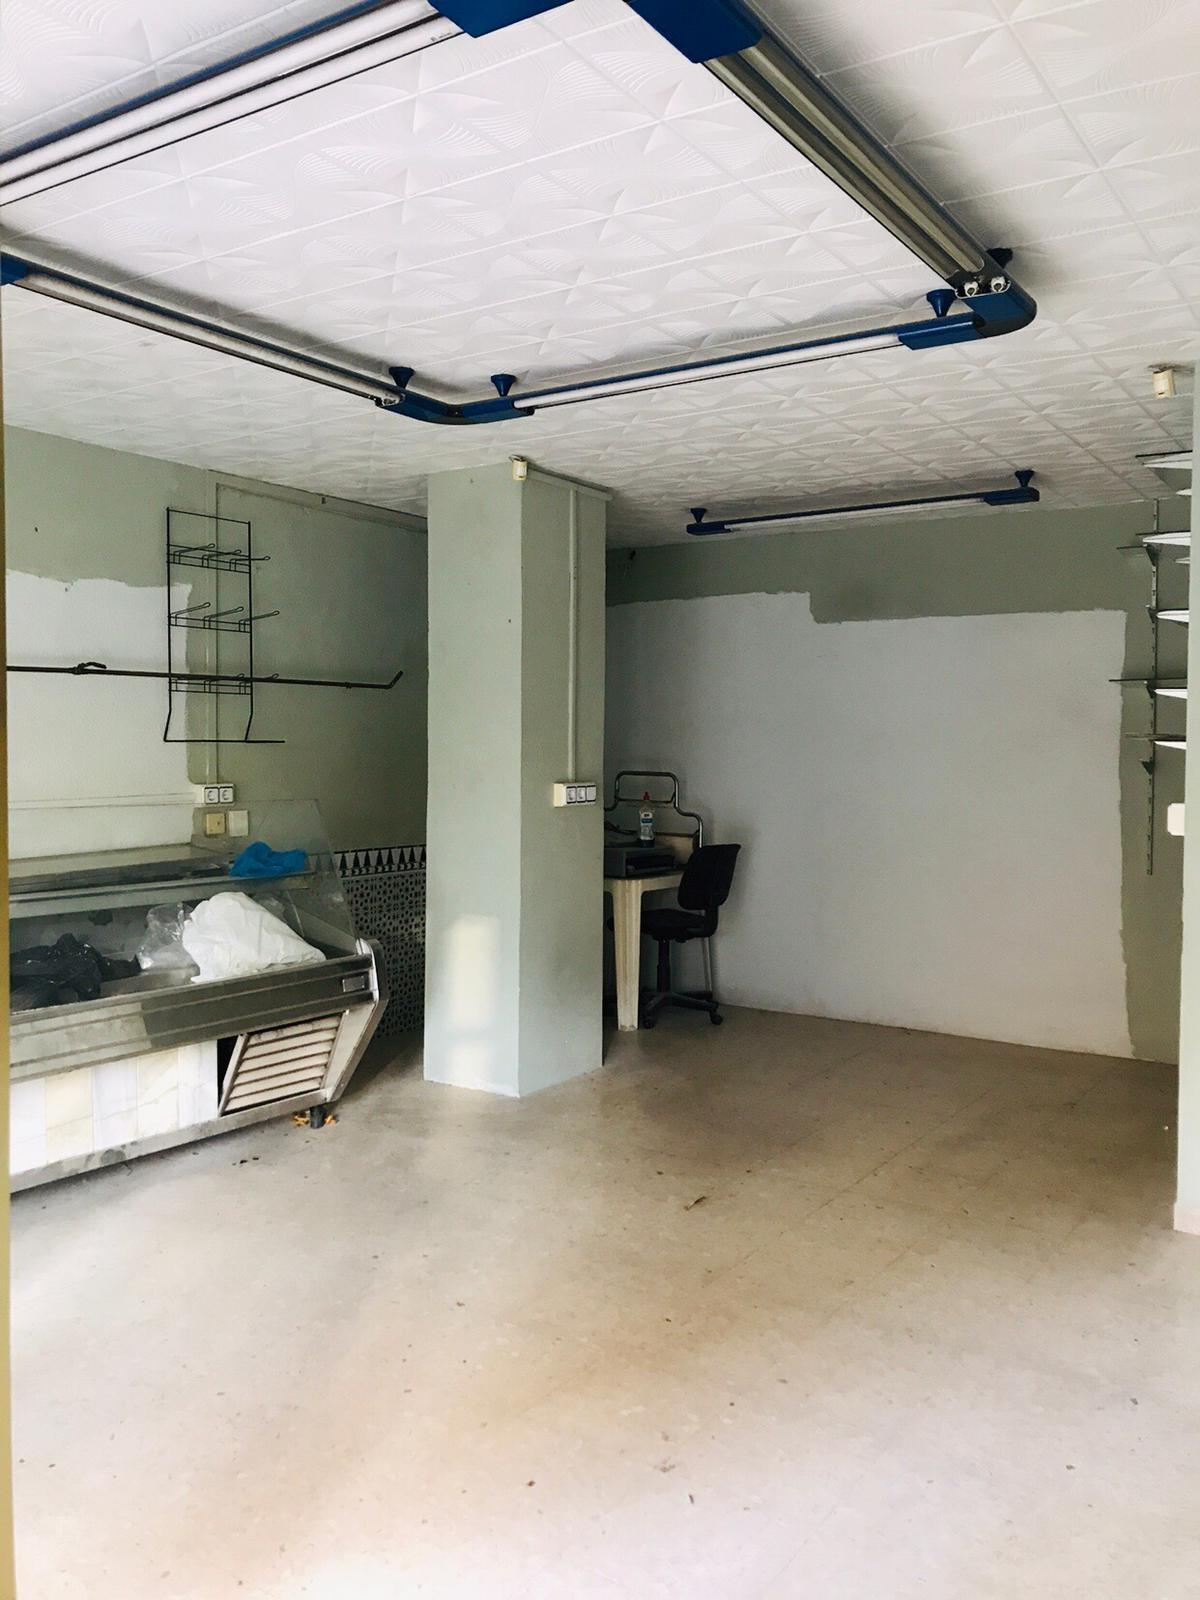 Local en alquiler en San Francisco Javier (Granada), 500 €/mes